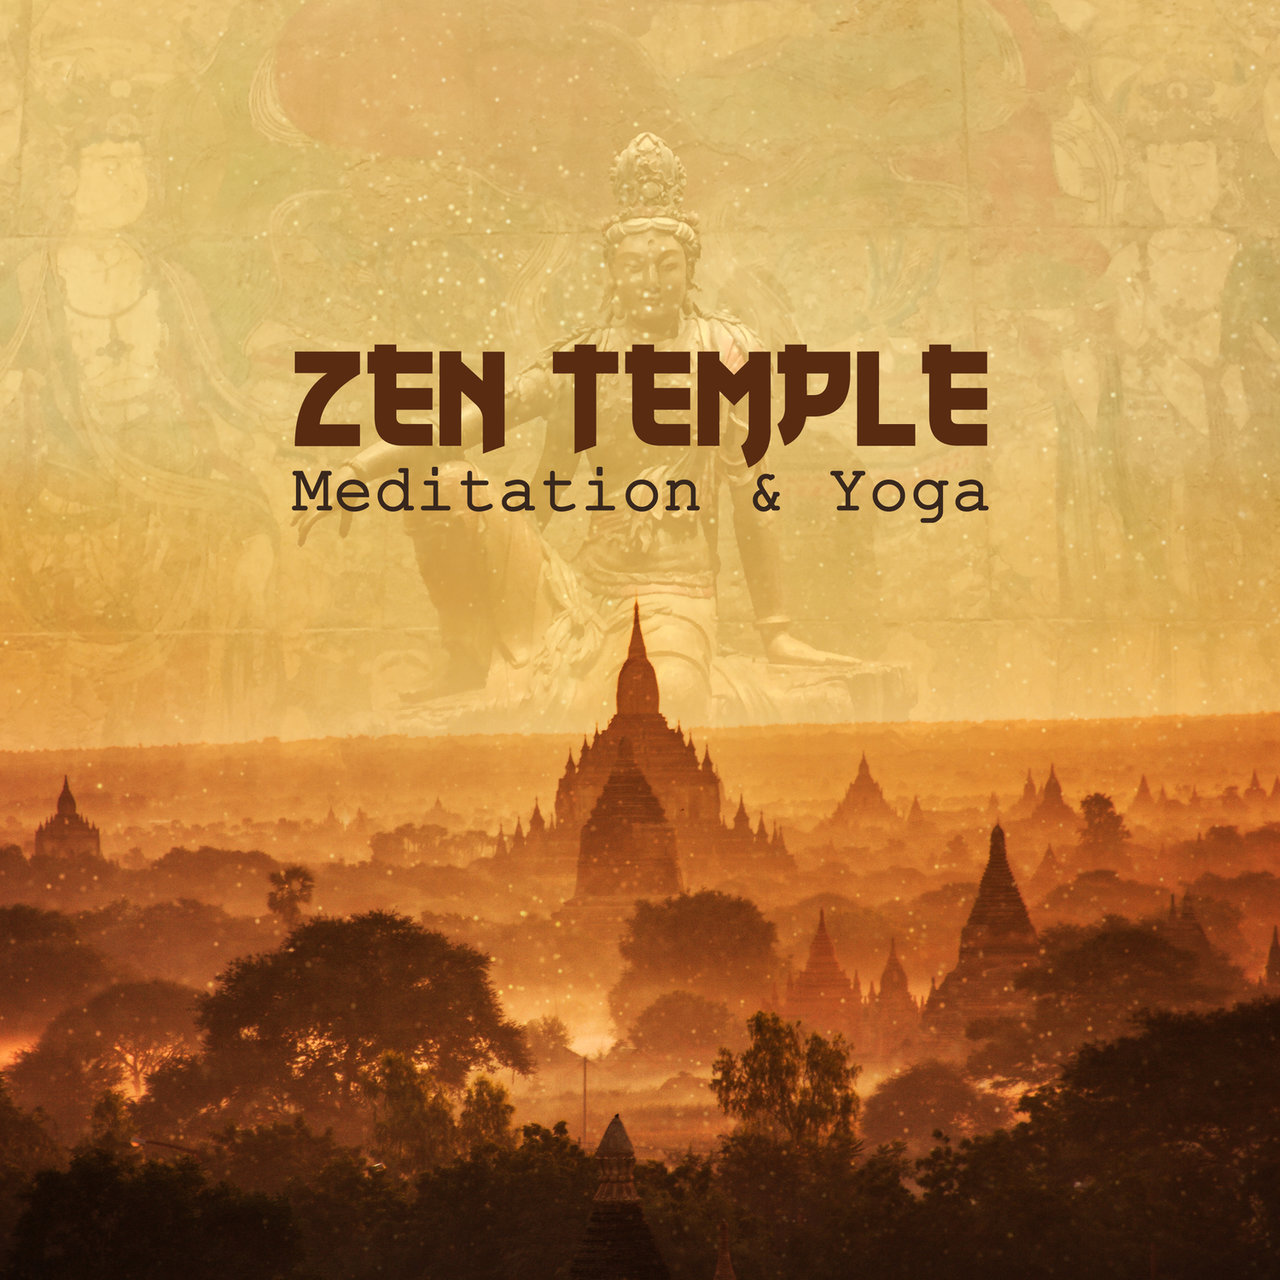 Zen Temple Meditation Yoga Music New Age Background For Massage Therapy Deep